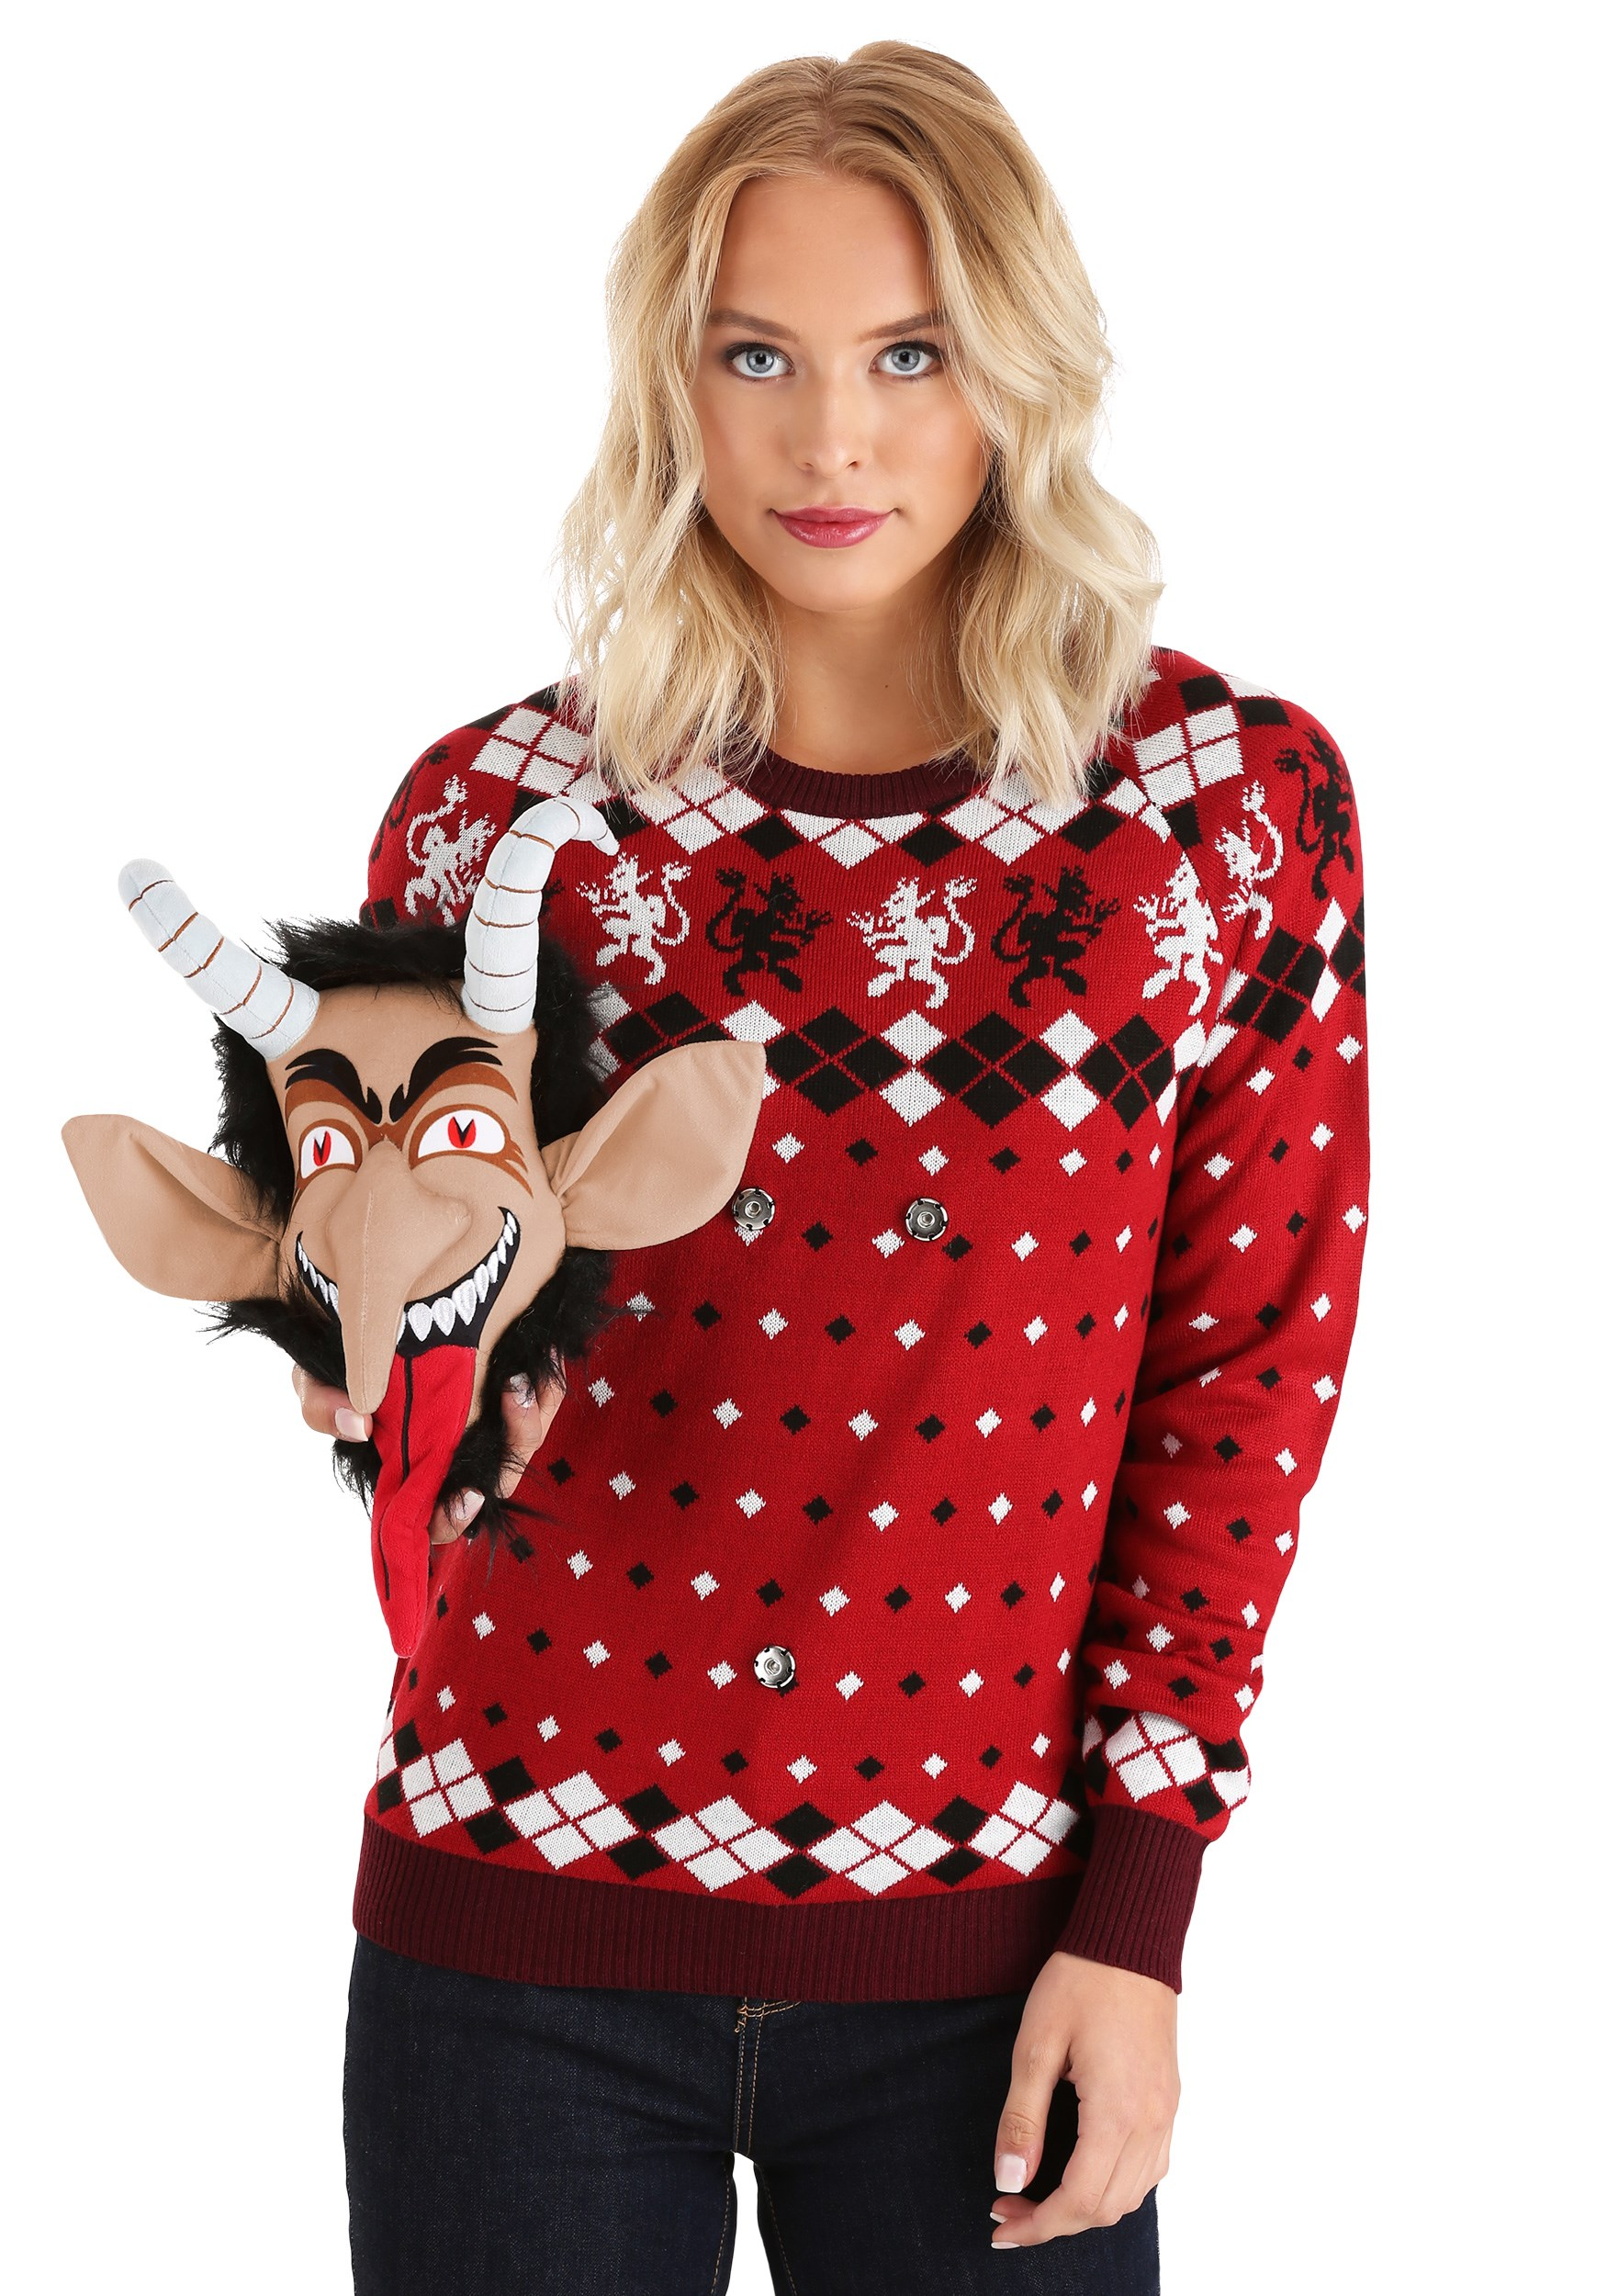 Krampus Head Ugly Christmas Sweater Adult 3d